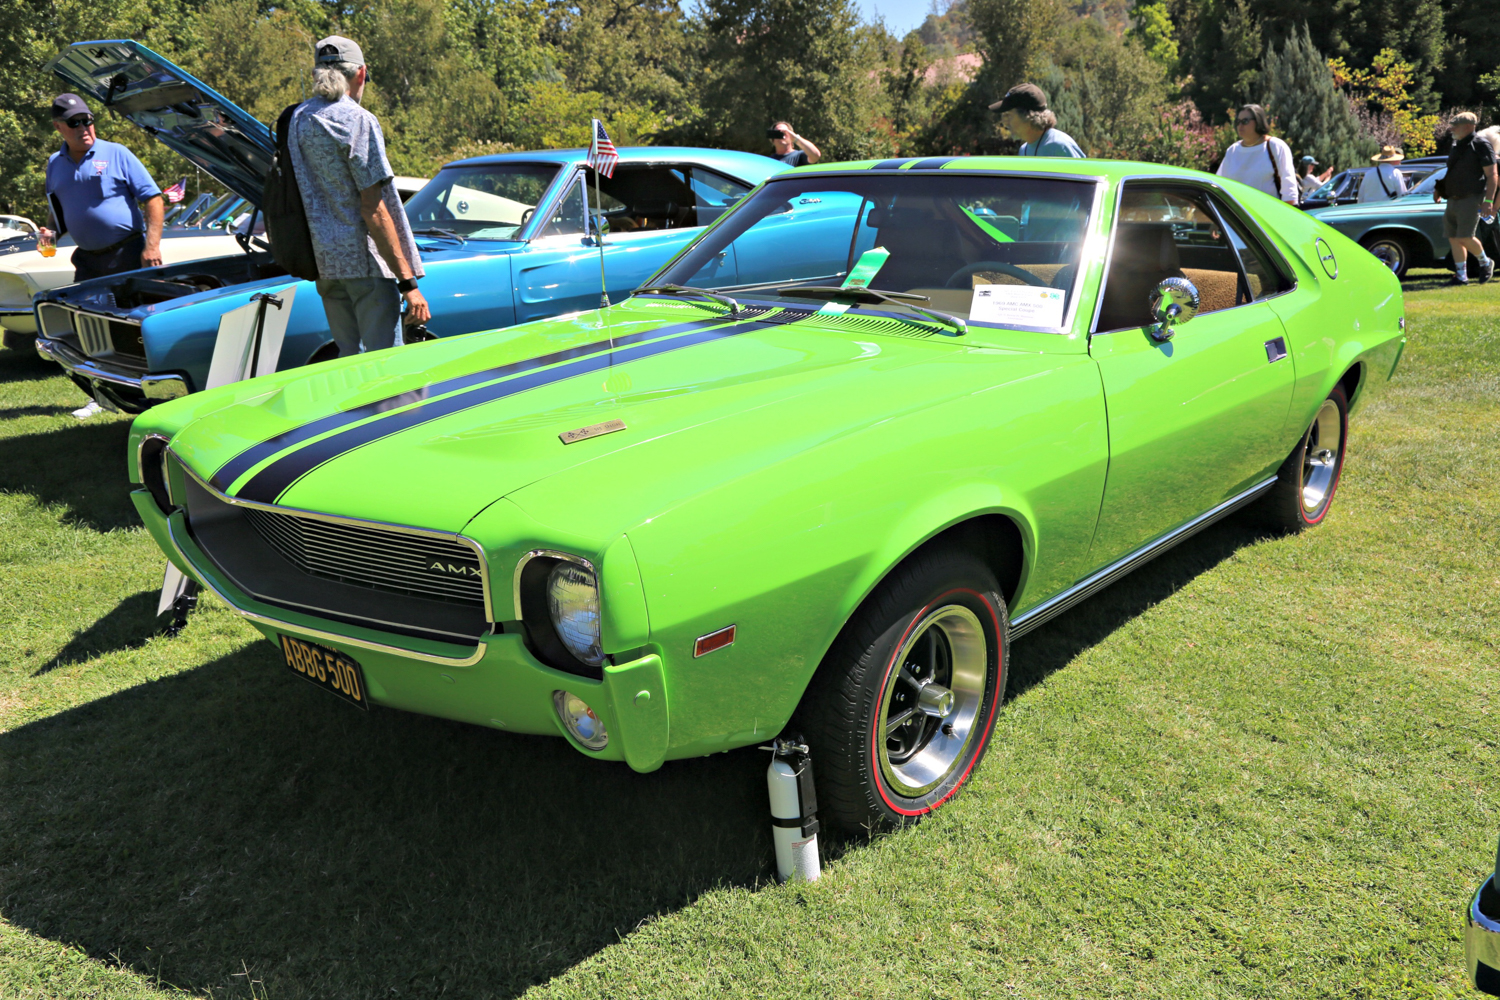 1969 AMC AMX 500 Speical. Kevin N. Shannon. Ironstone Concours 2018